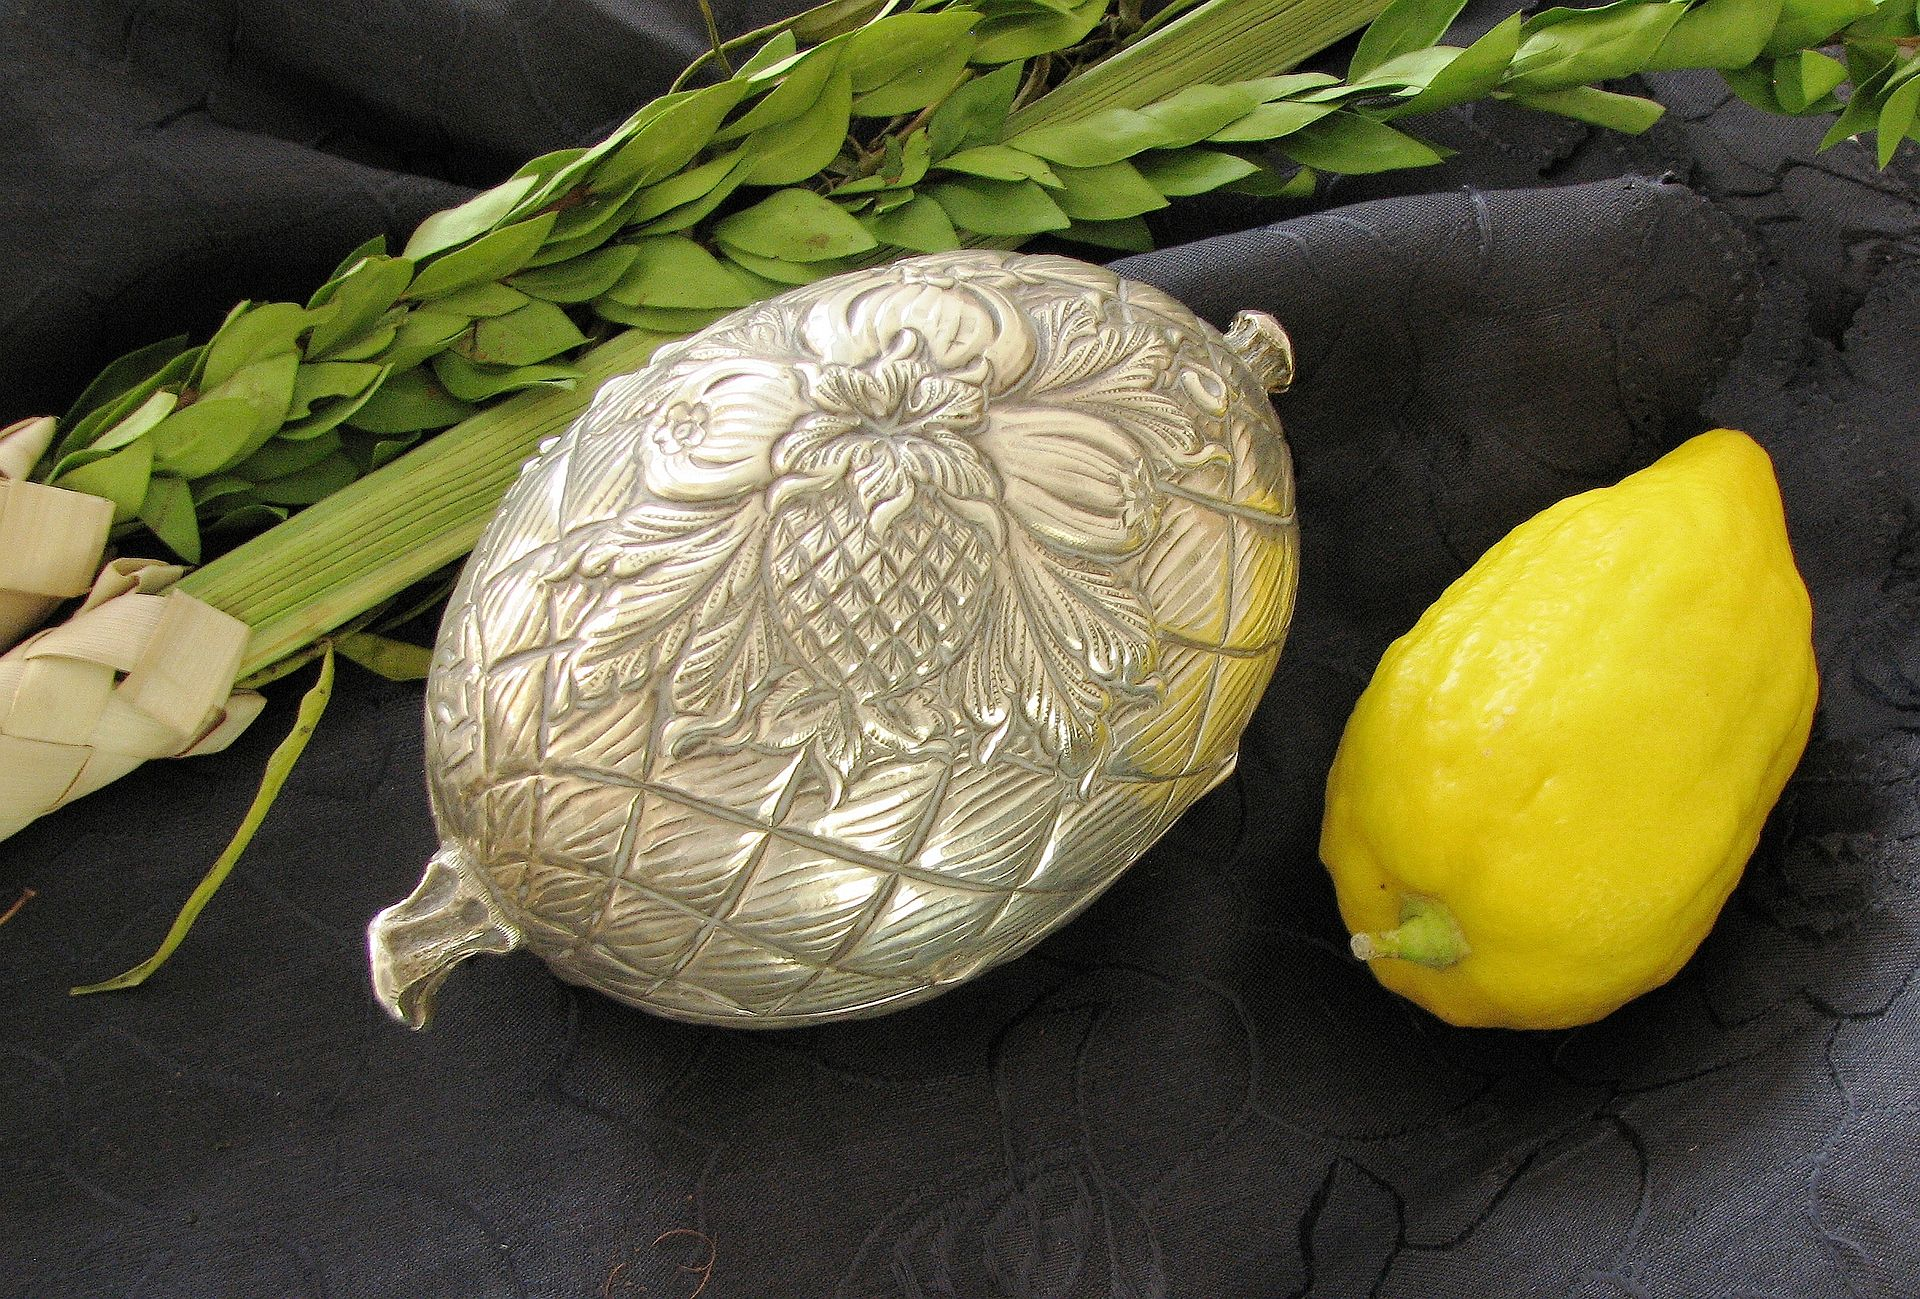 An Etrog, a silver Etrog box, and Lulav; all used on the Jewish holiday of Sukkot